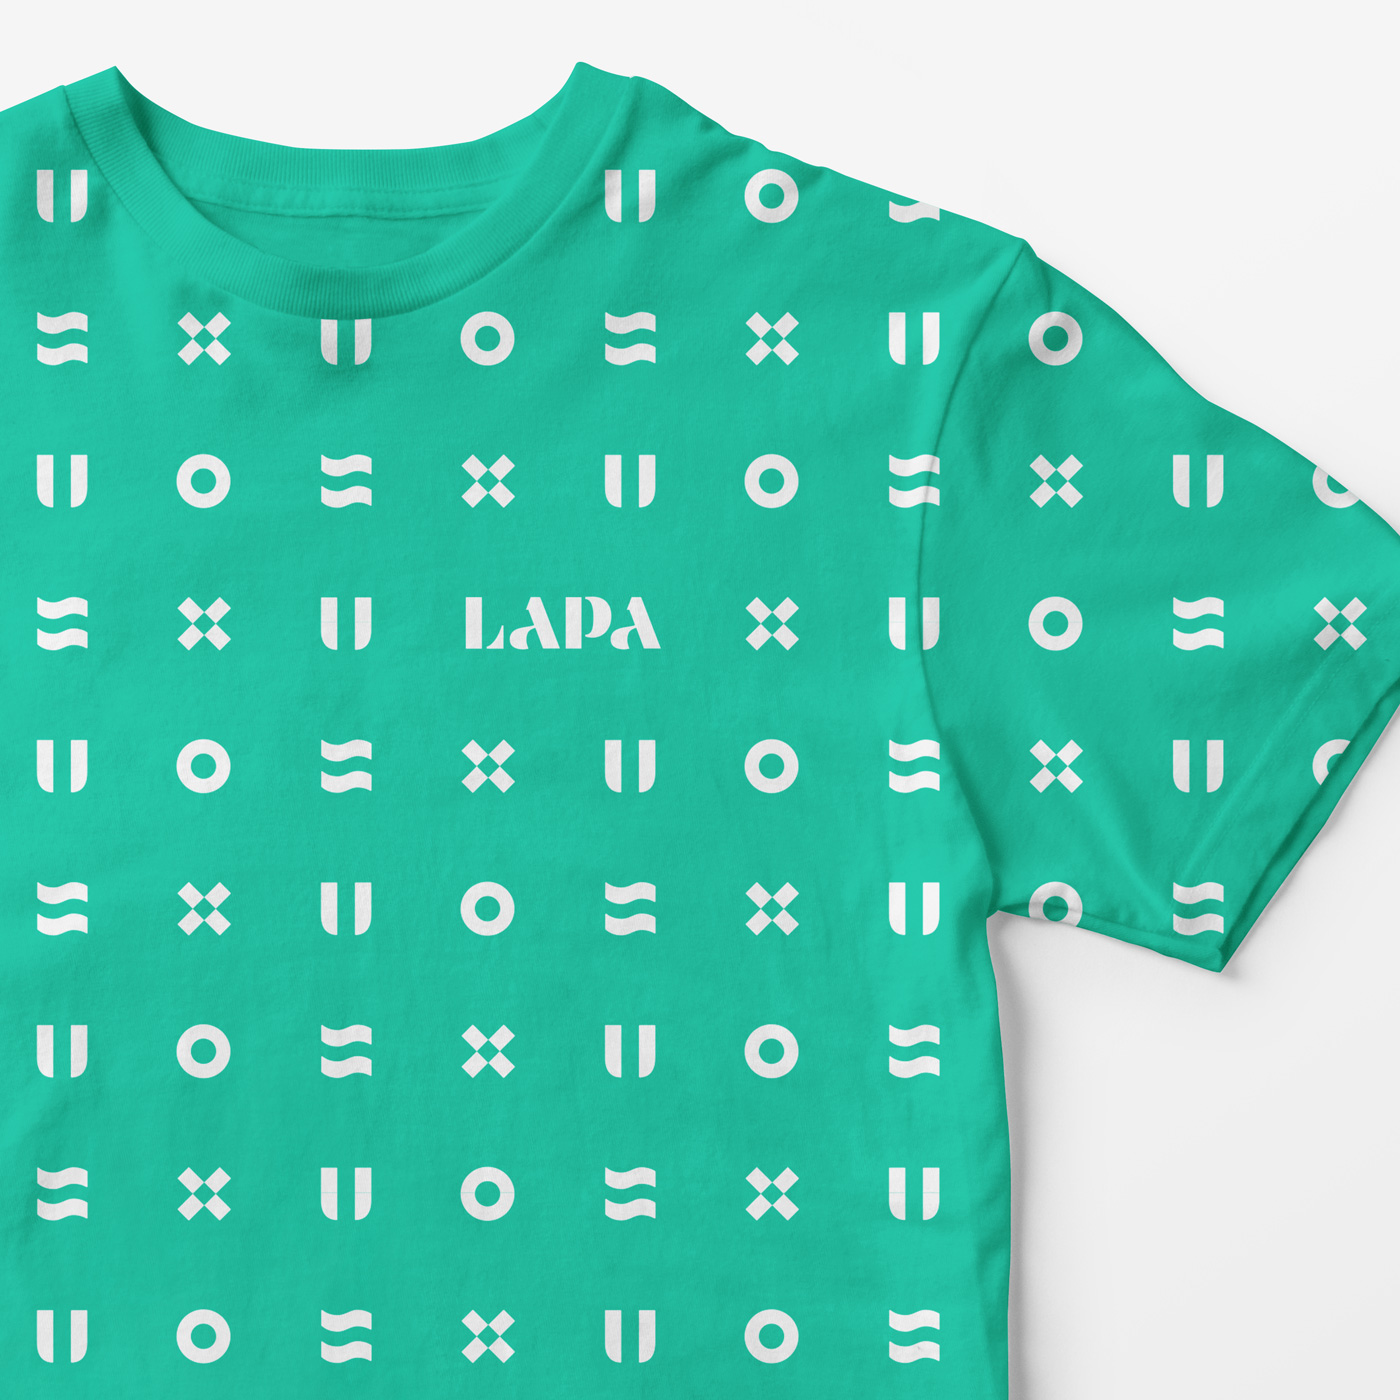 LAPA t-shirt by Gen Design Studio